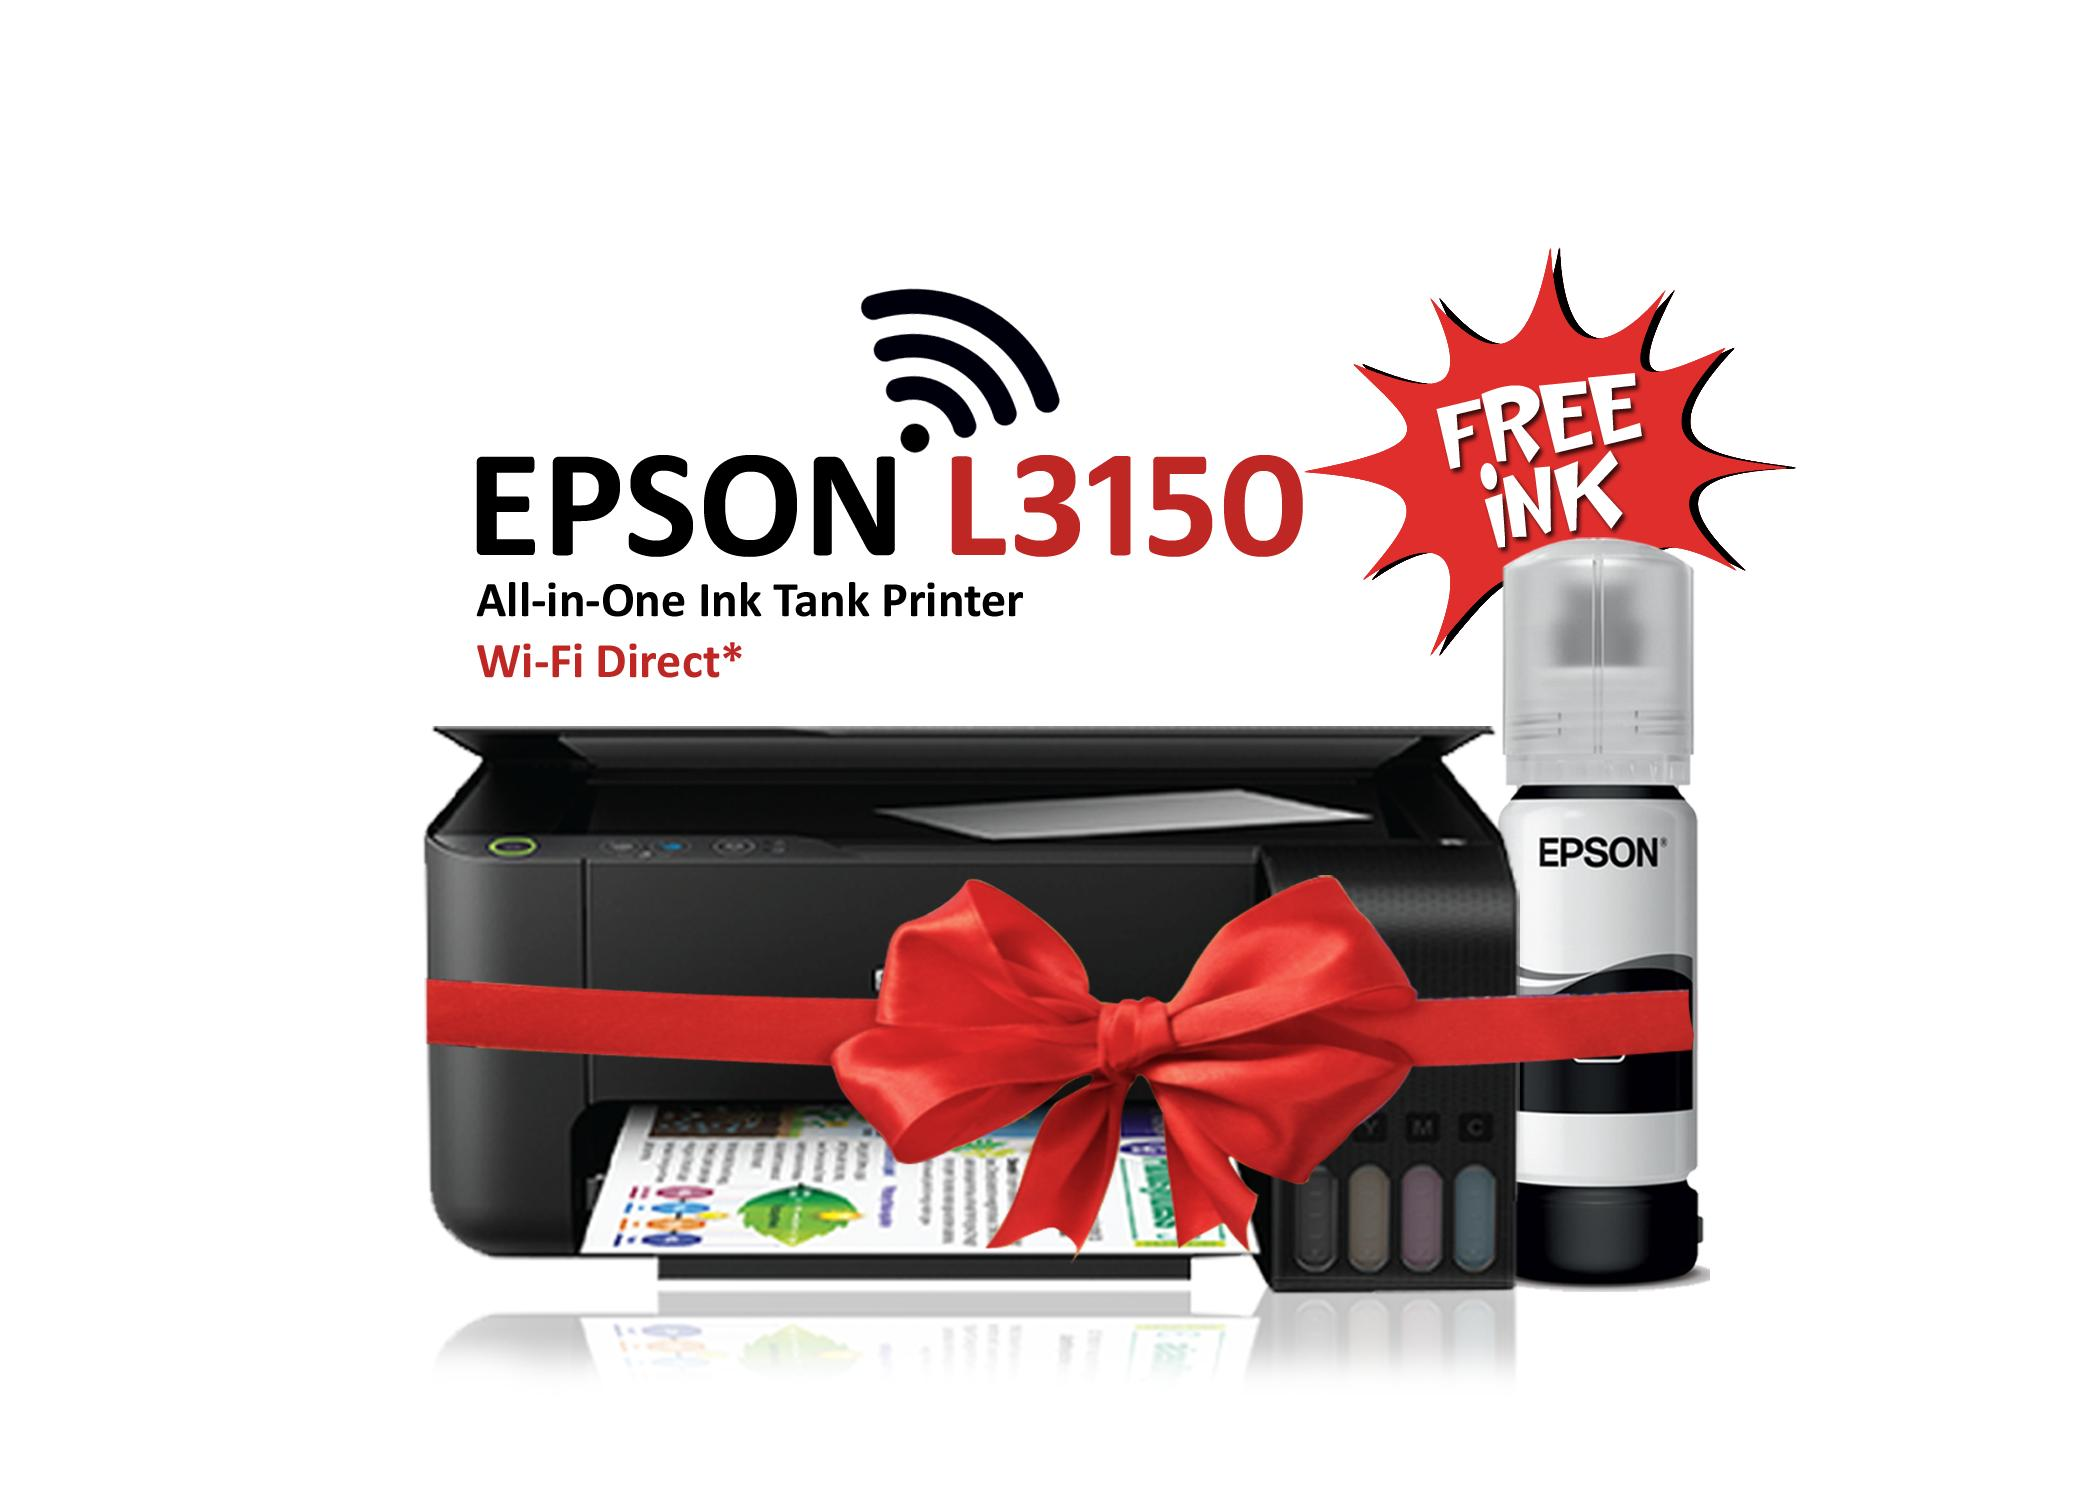 EPSON PRINTER L3150 ALL IN ONE INK TANK SYTEM (4 COLOR)